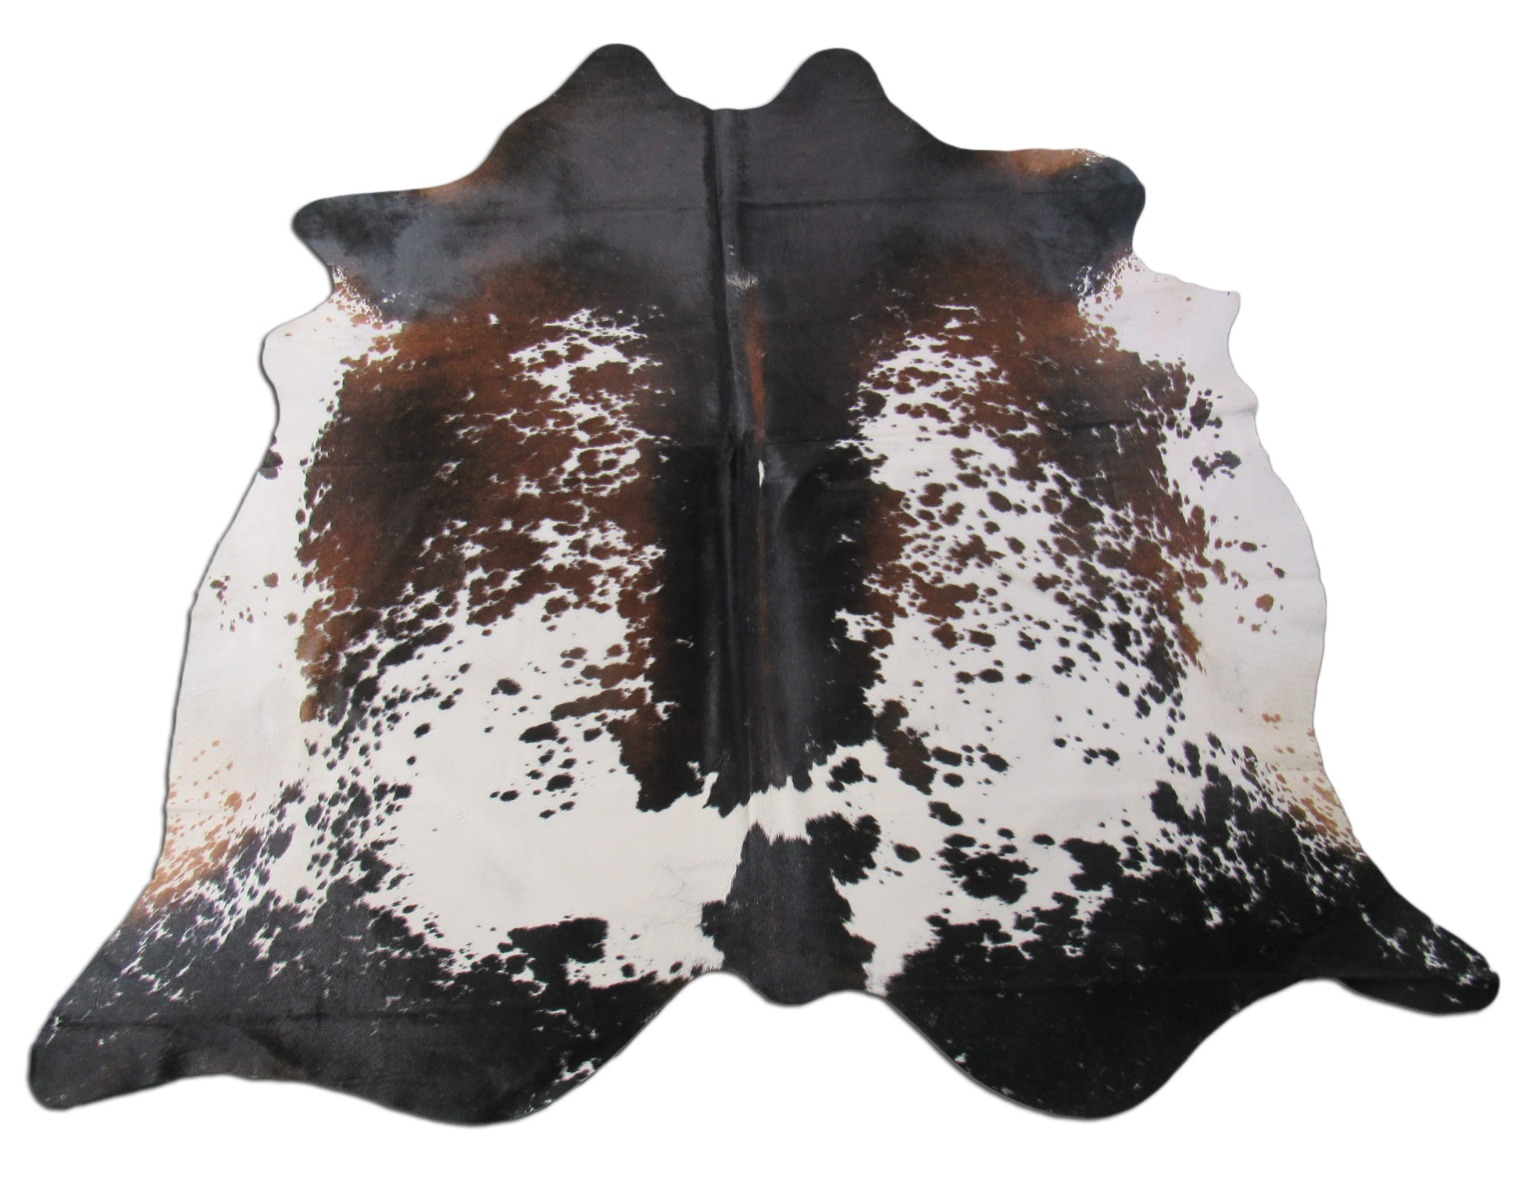 A-1411 Brown and White Speckled Cowhide Rug Size: 7' X 7'